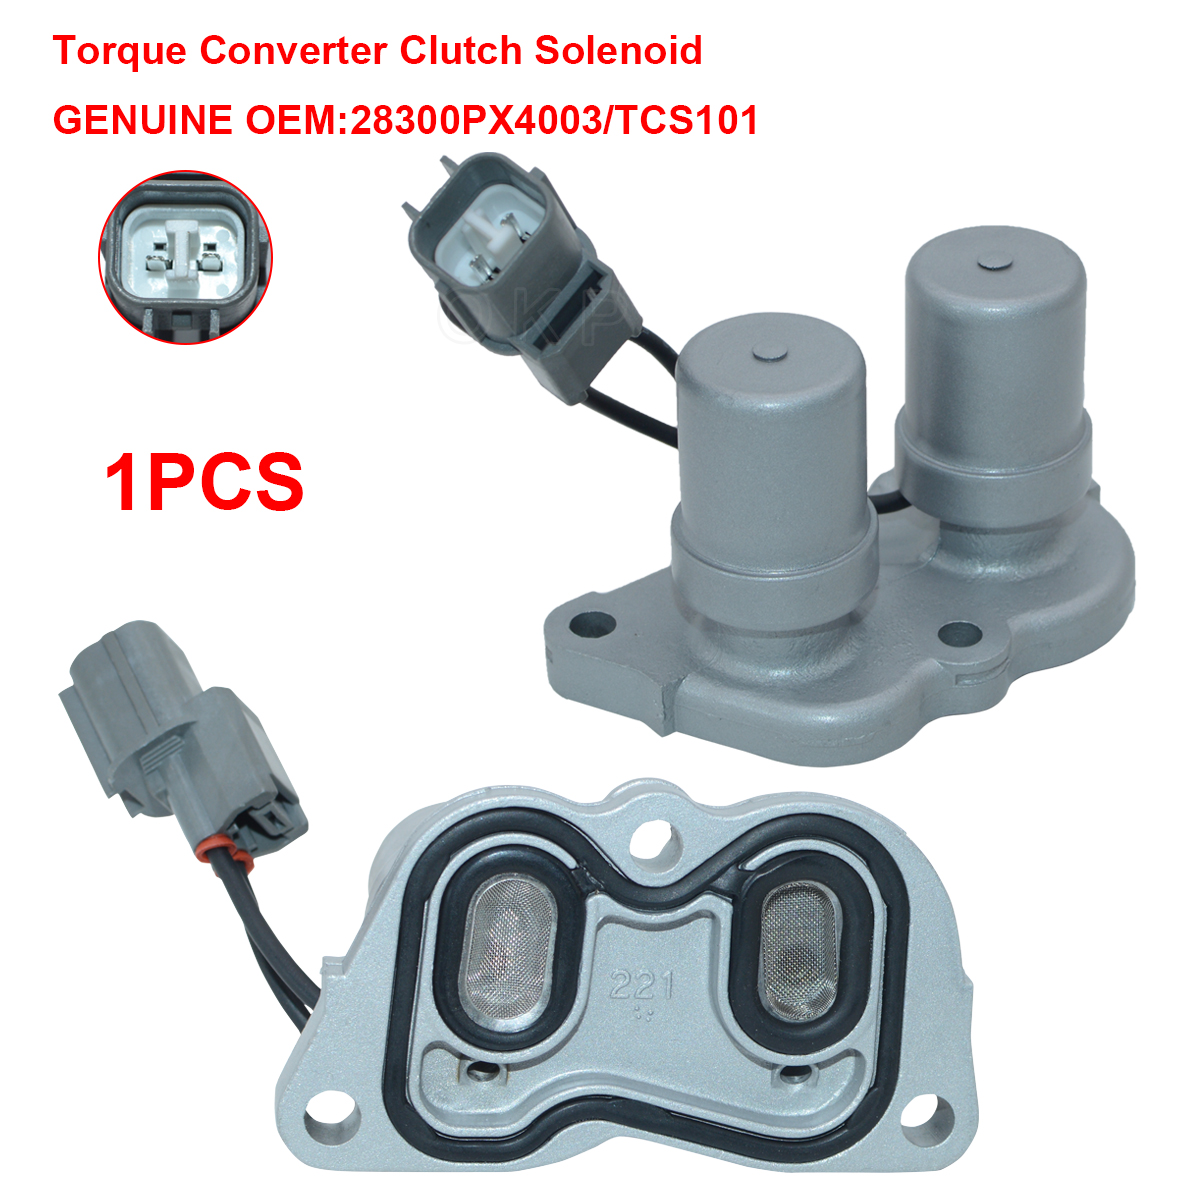 Oem Transmission Shift Control Solenoid 28300 Px4 003 For Honda 1999 Accord Acura Cl